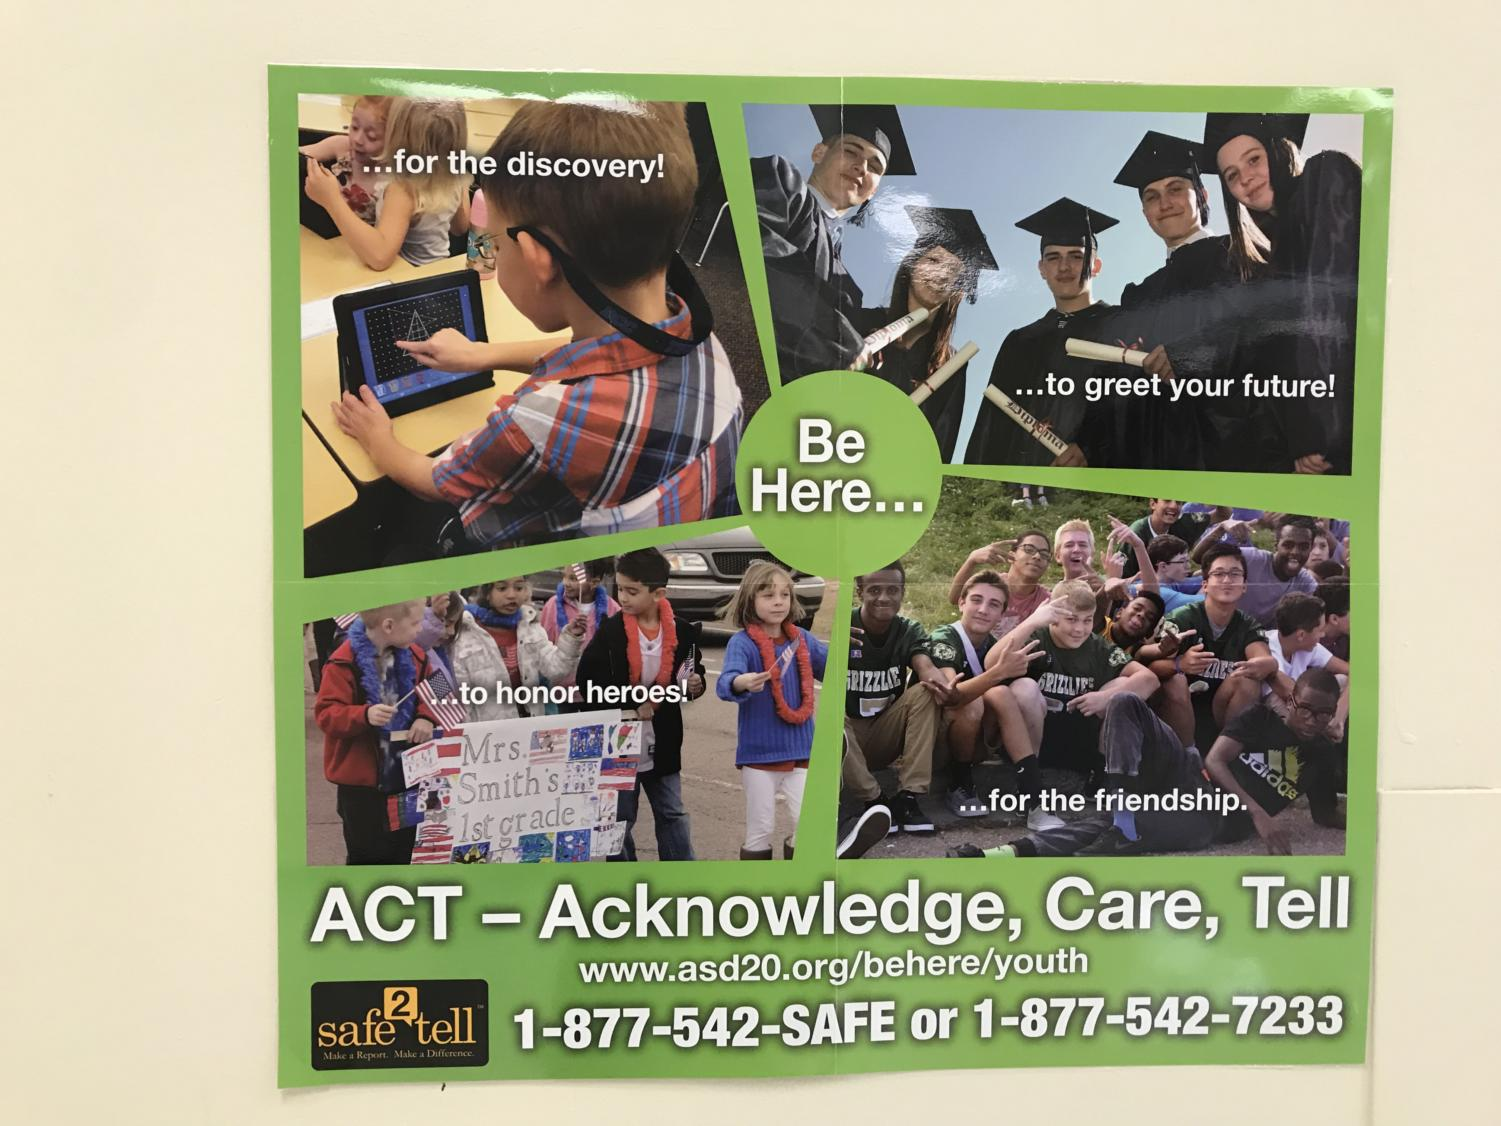 A Safe2Tell poster with the ACT acronym, representing what the program is about.